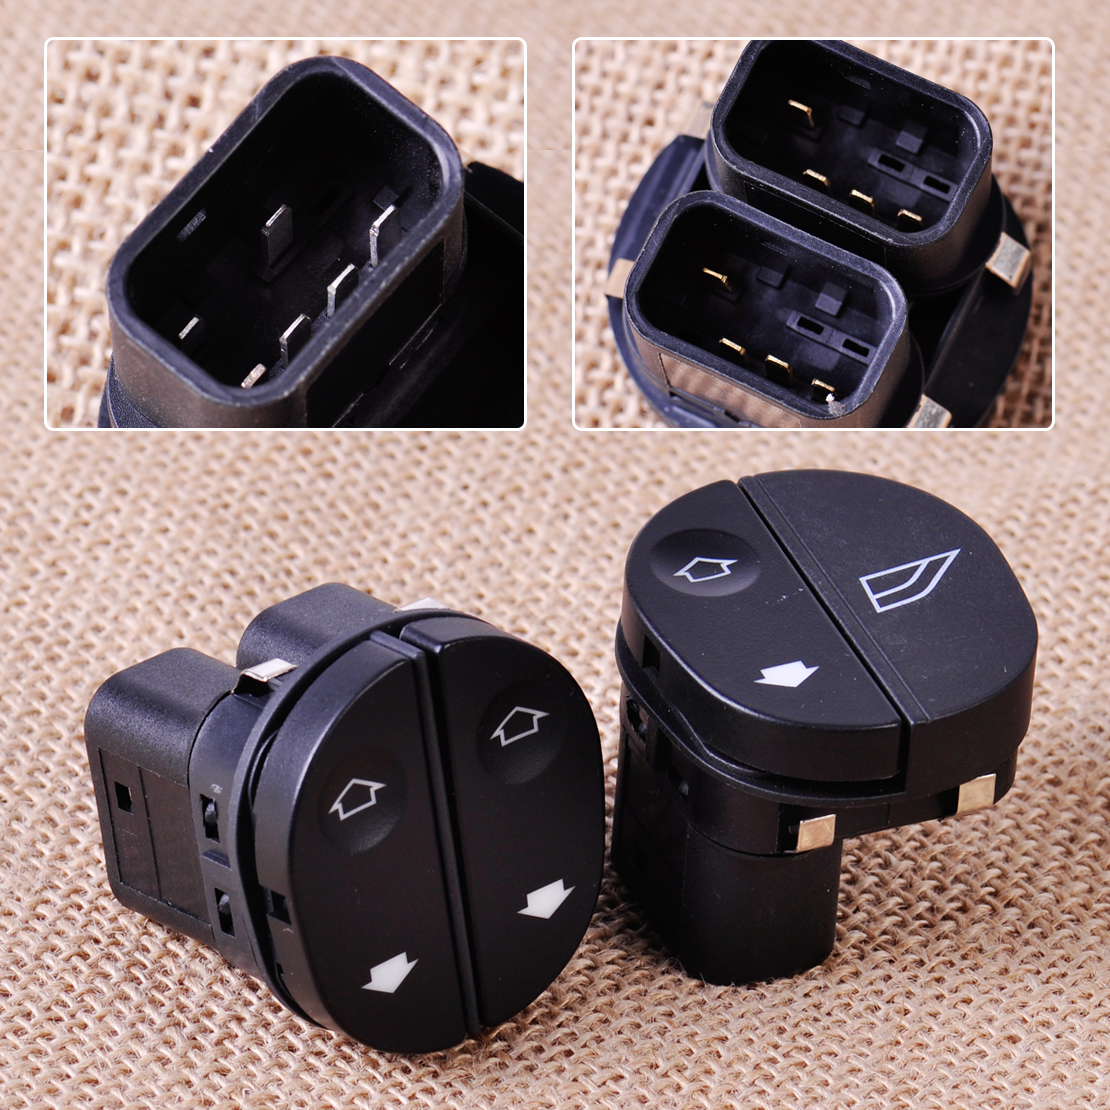 Citall power window switch driver side front passenger side 96fg14529ac 96fg14529bc for ford fiesta fusion